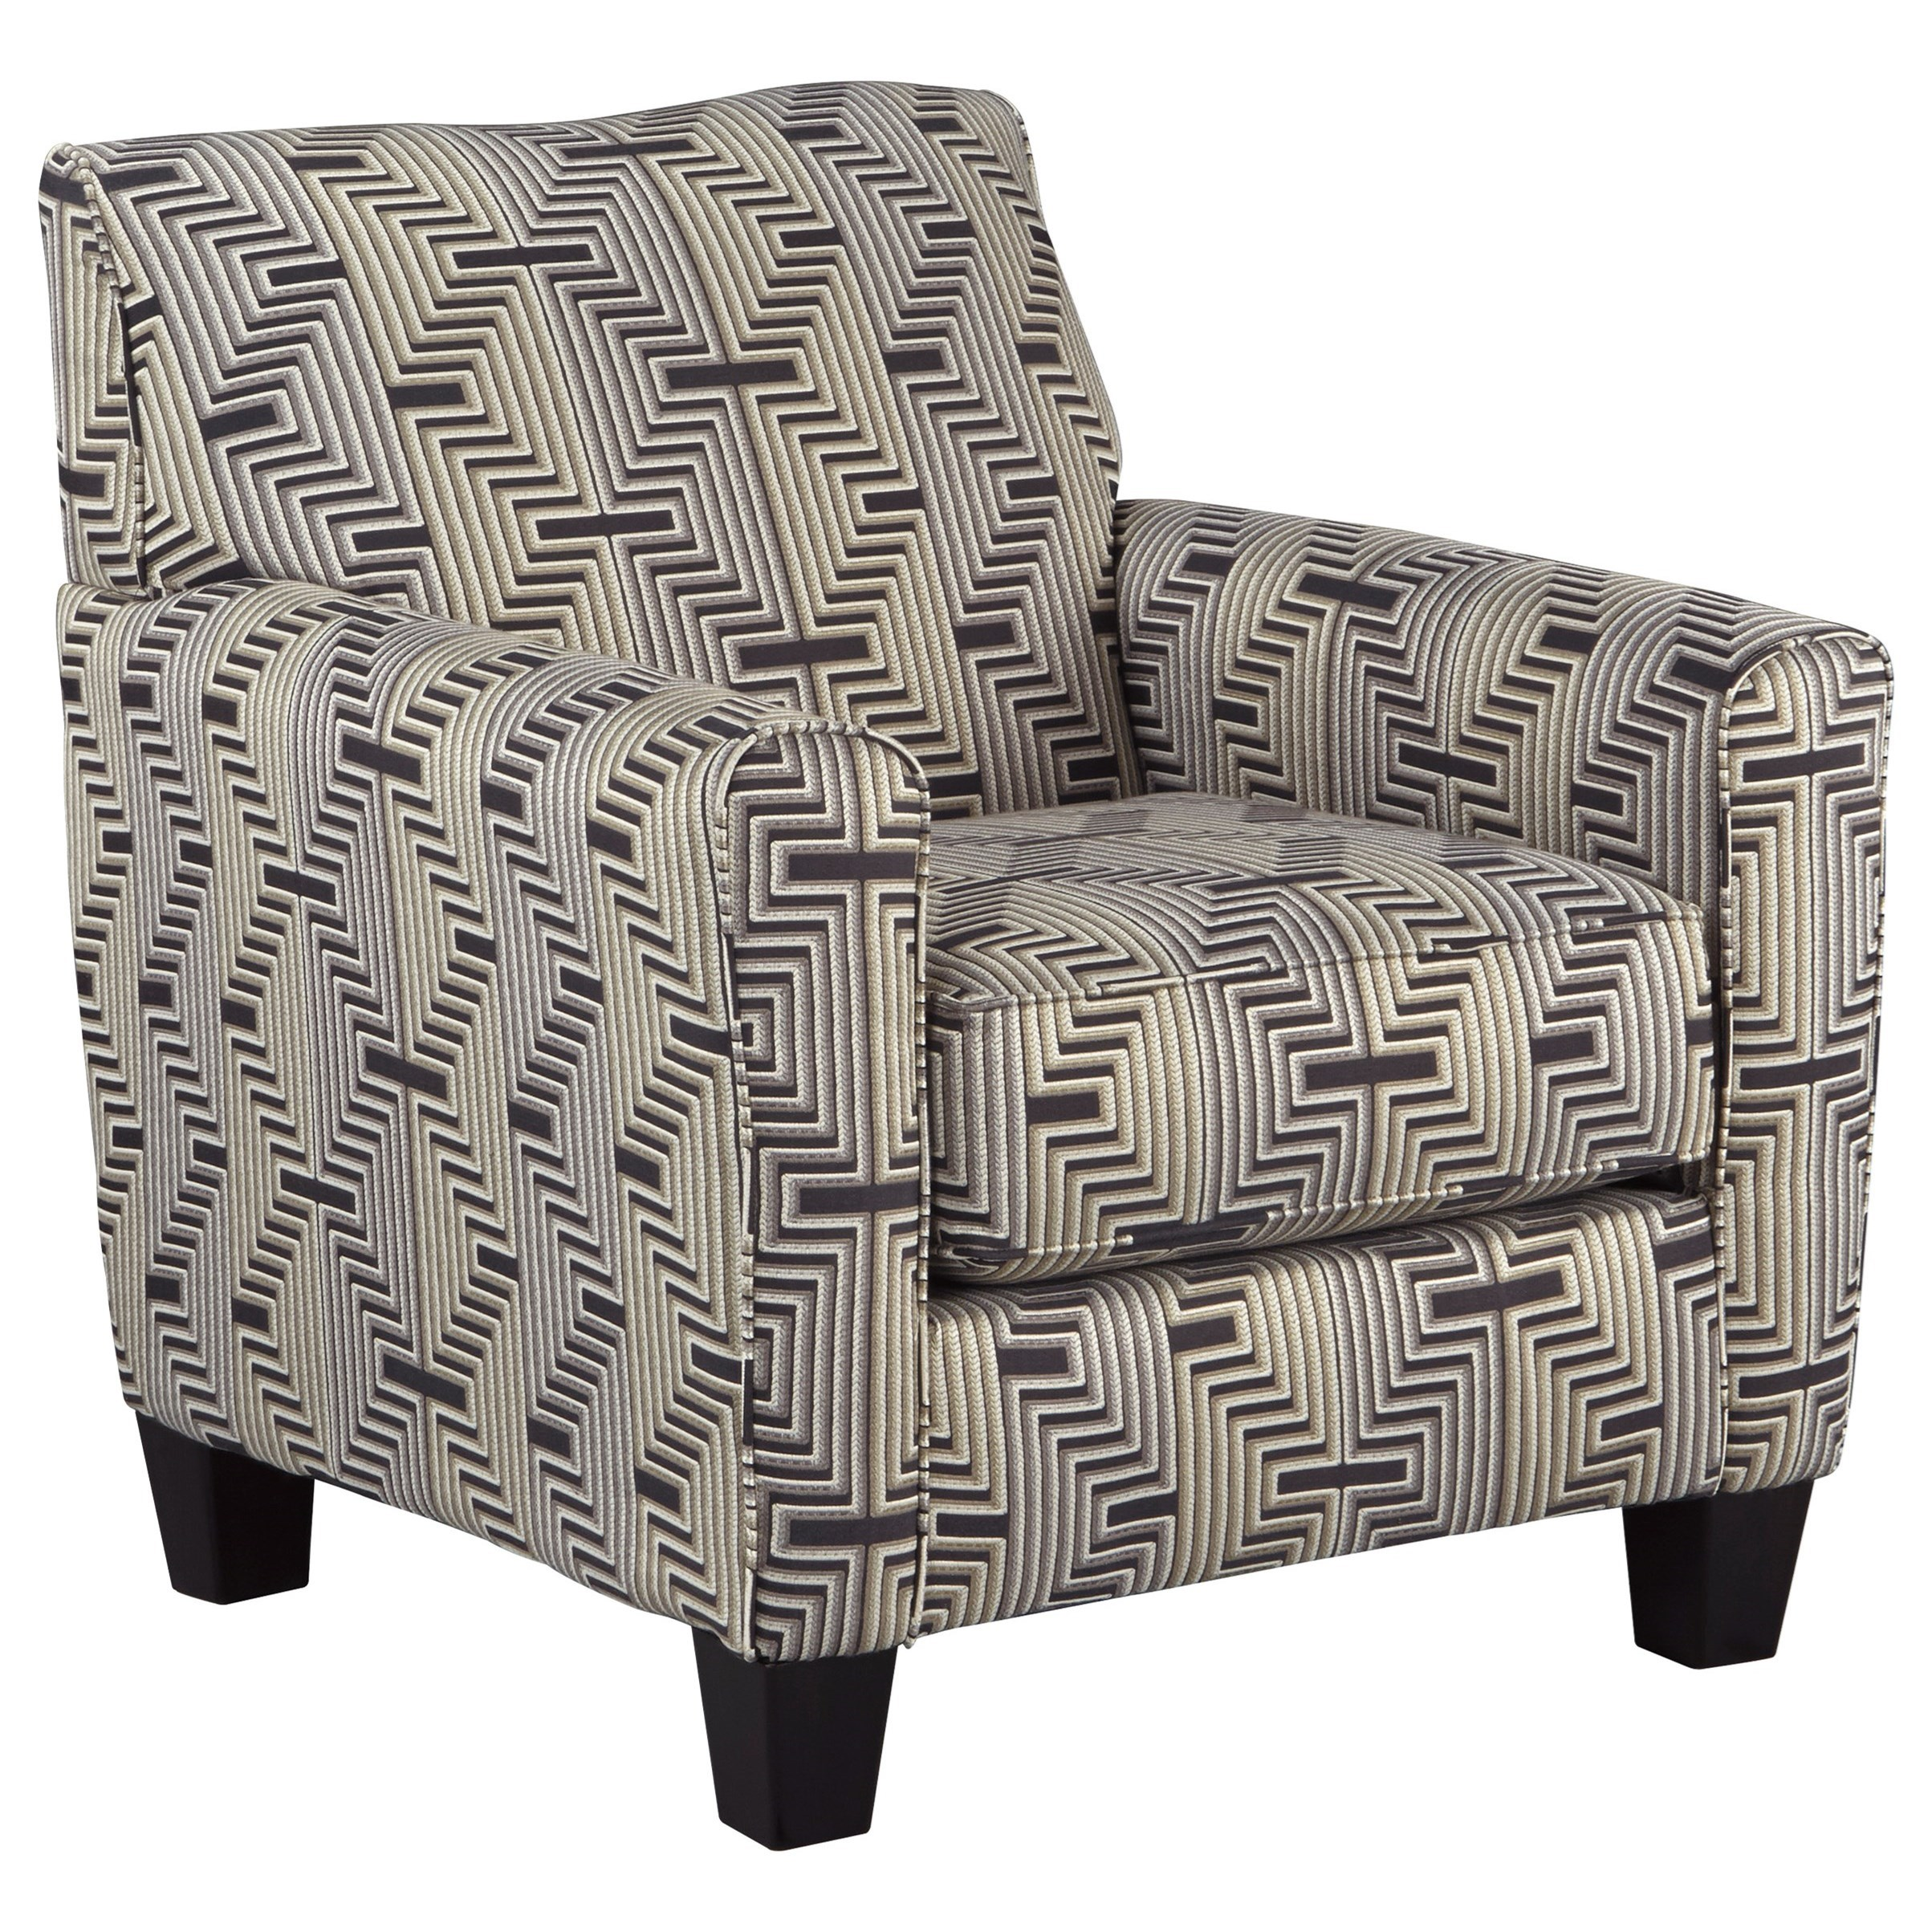 Accent Chair with Zig-Zag Fabric Design